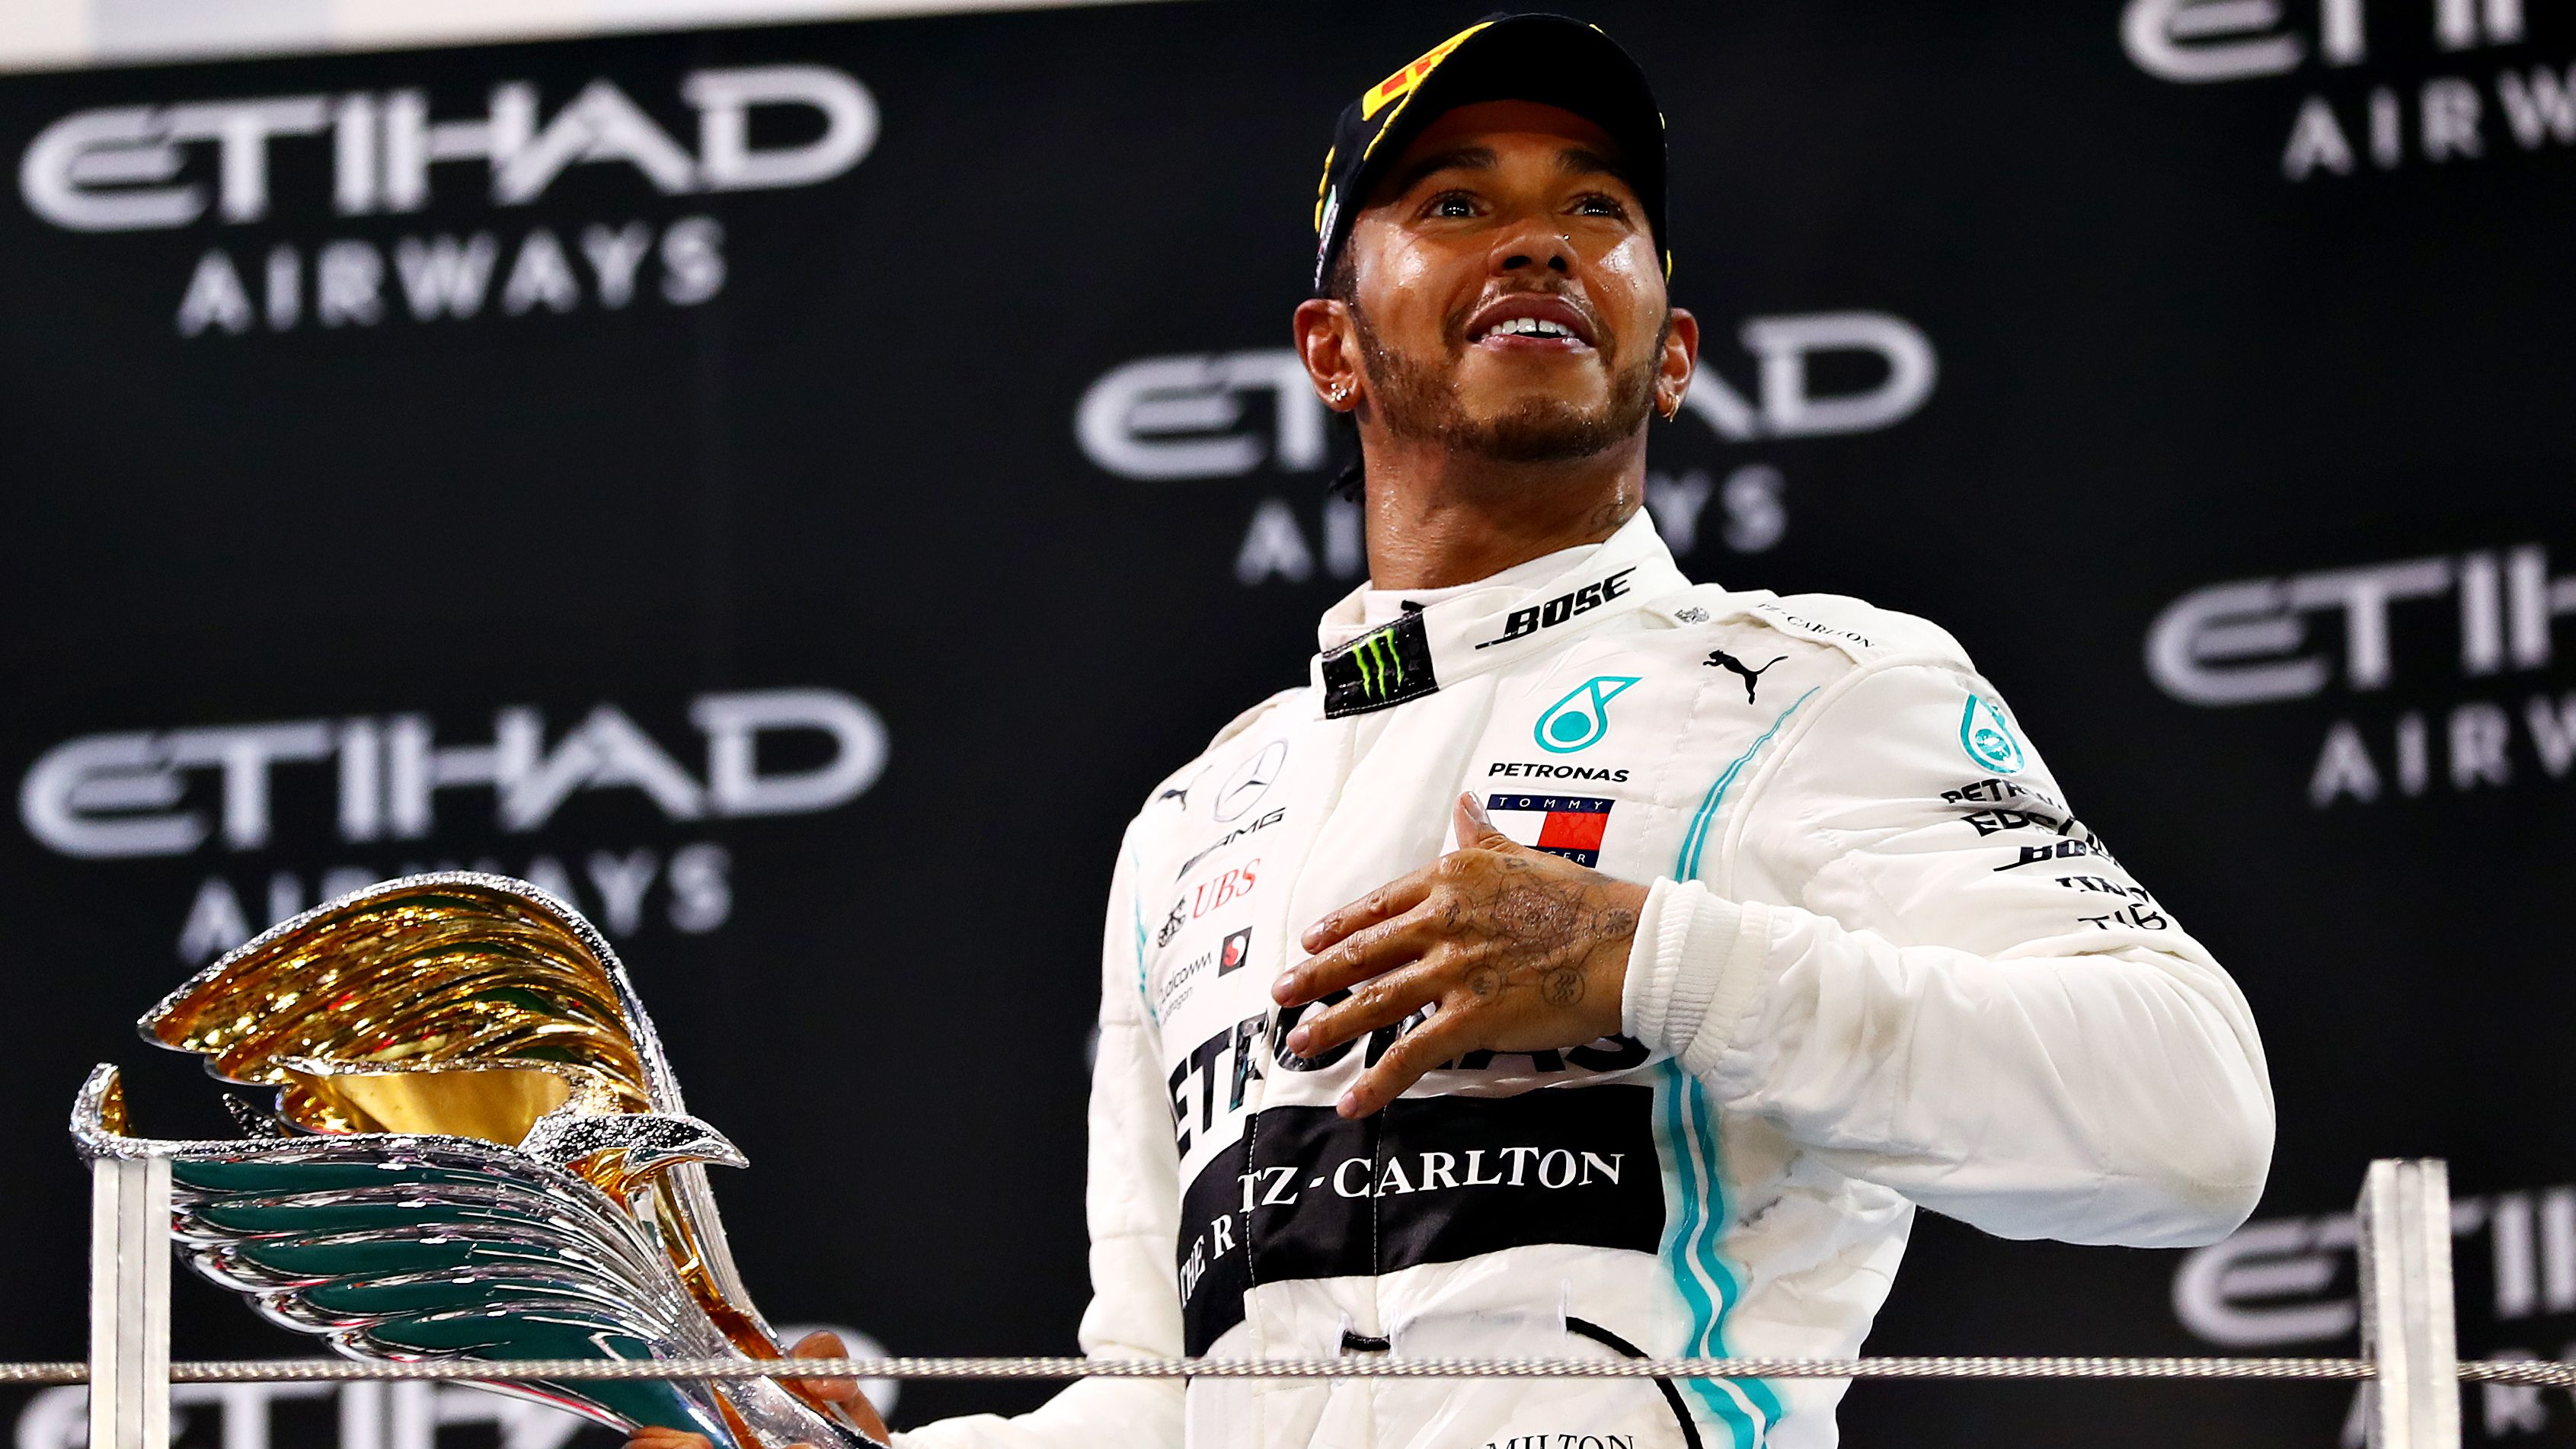 Ferrari CEO breaks silence on Lewis Hamilton links